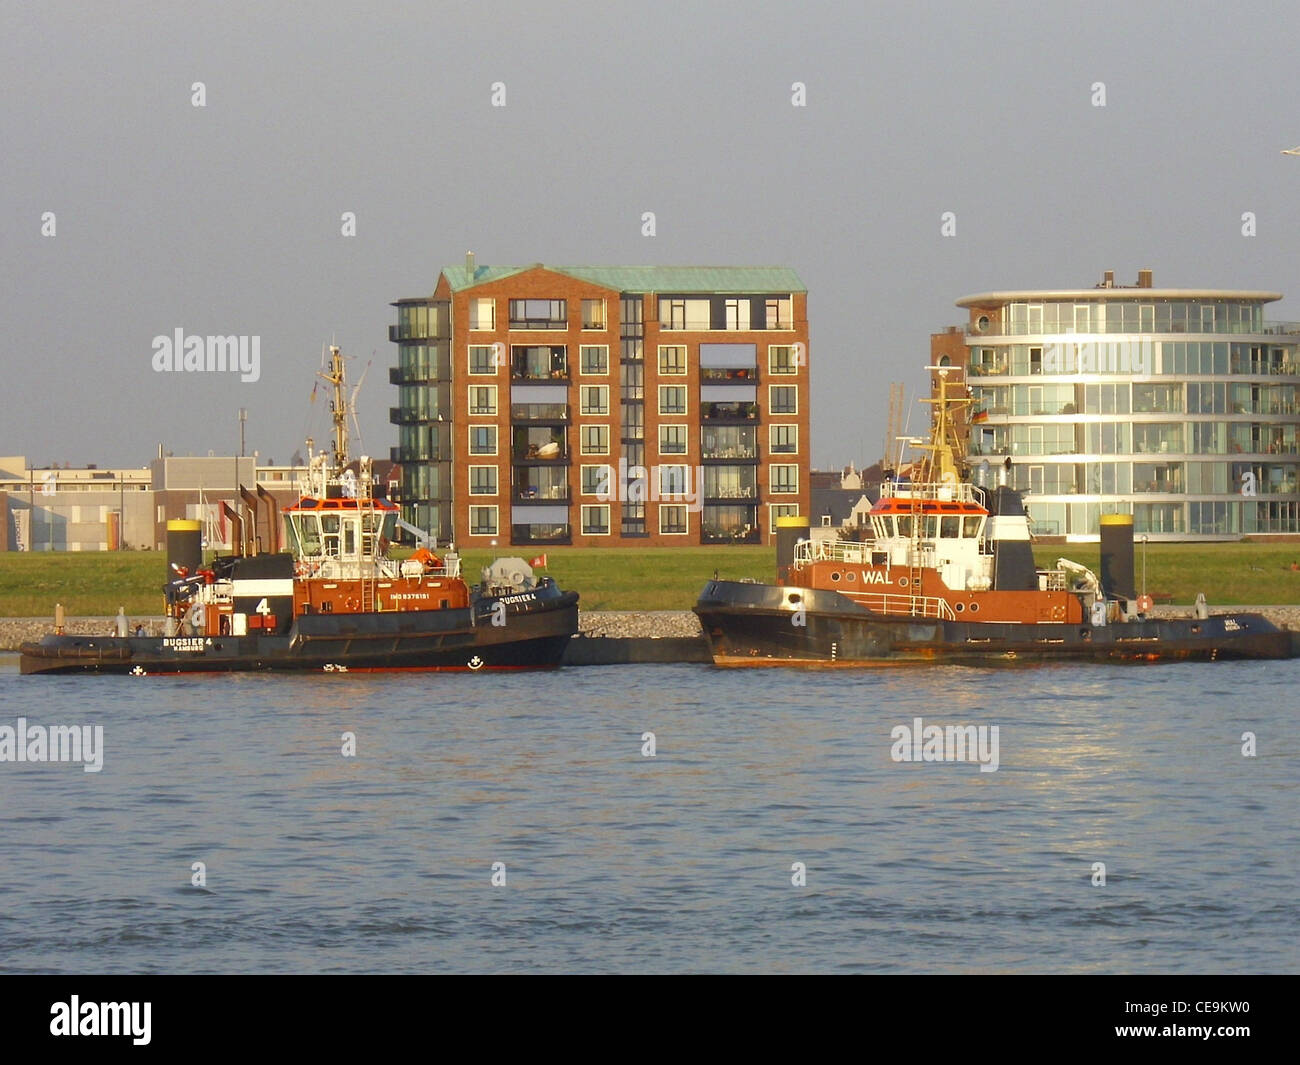 tugboats Bugsier 4 and Wal in Bremerhaven, Germany - Stock Image